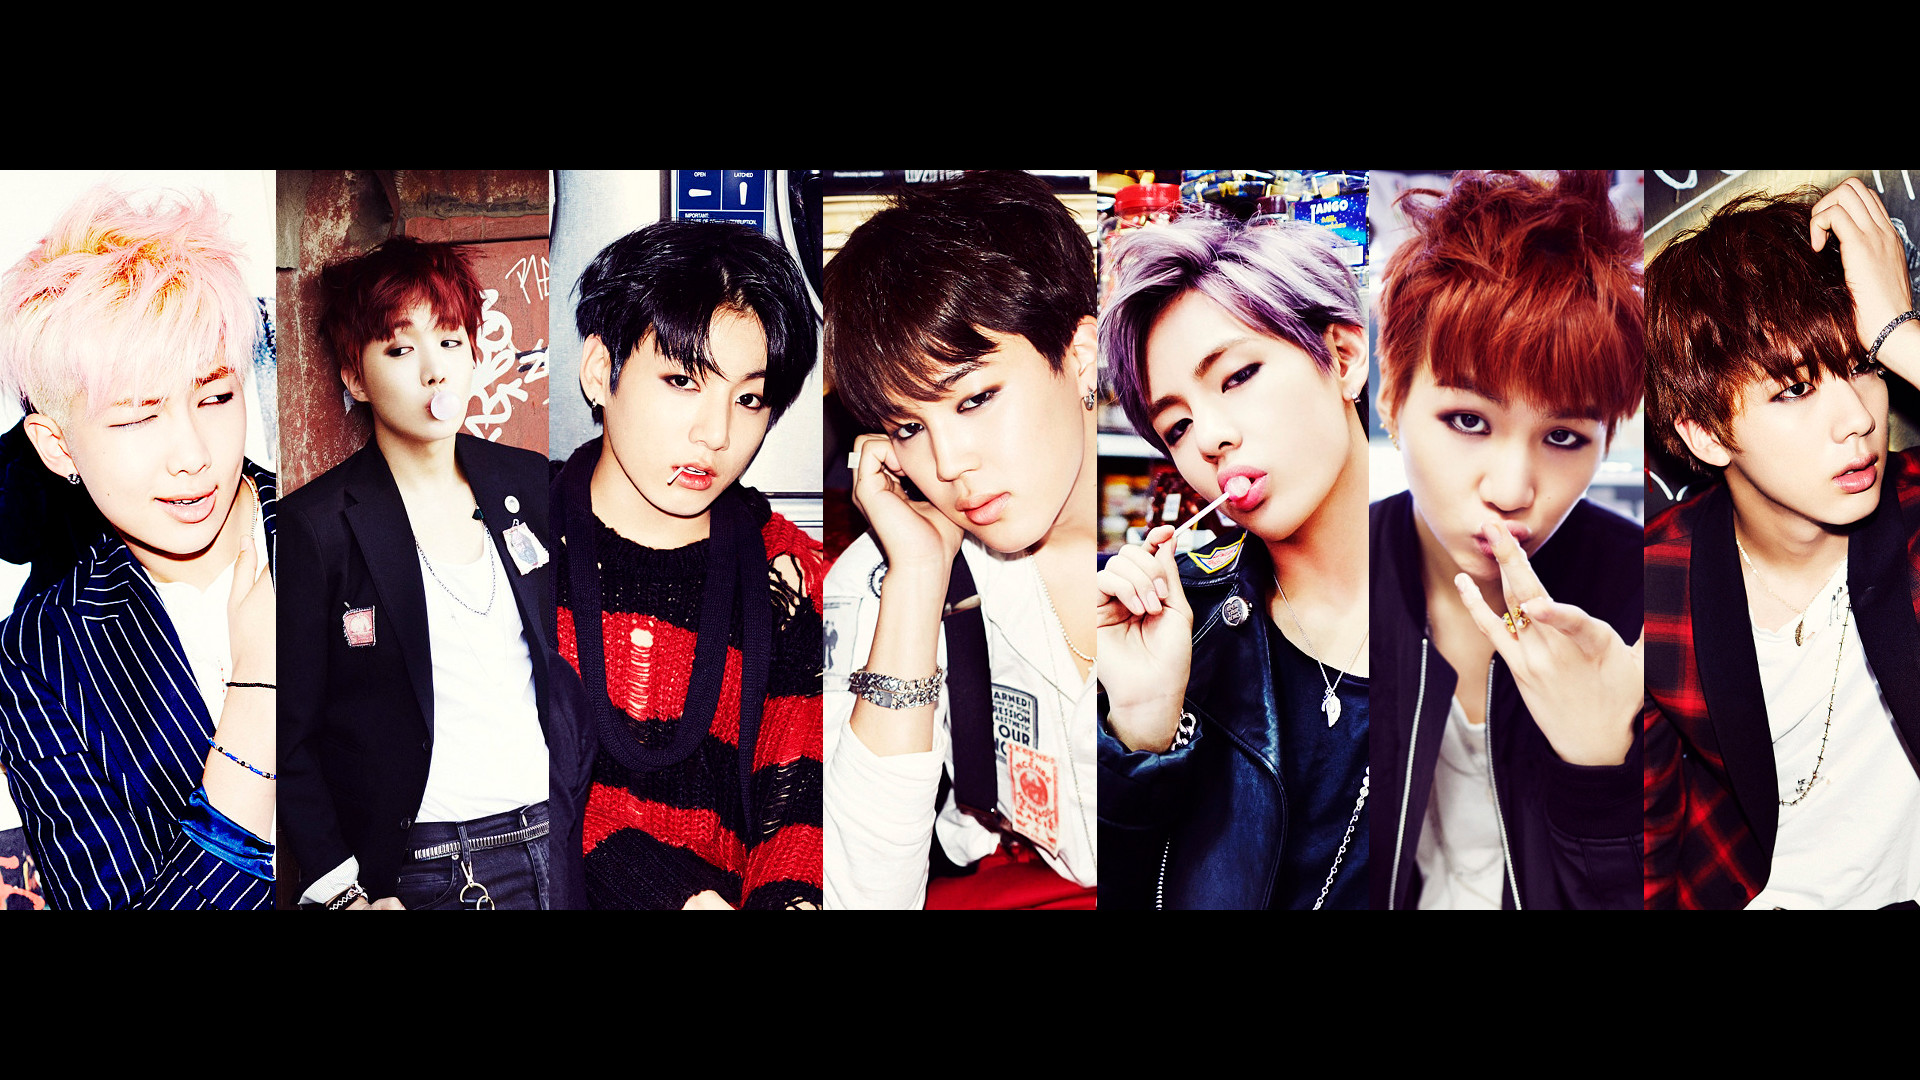 1920x1080 V Suga Rap Monster Jungkook Jin Jimin J-Hope BTS Bangtan Boys 1080p HD  Wallpaper